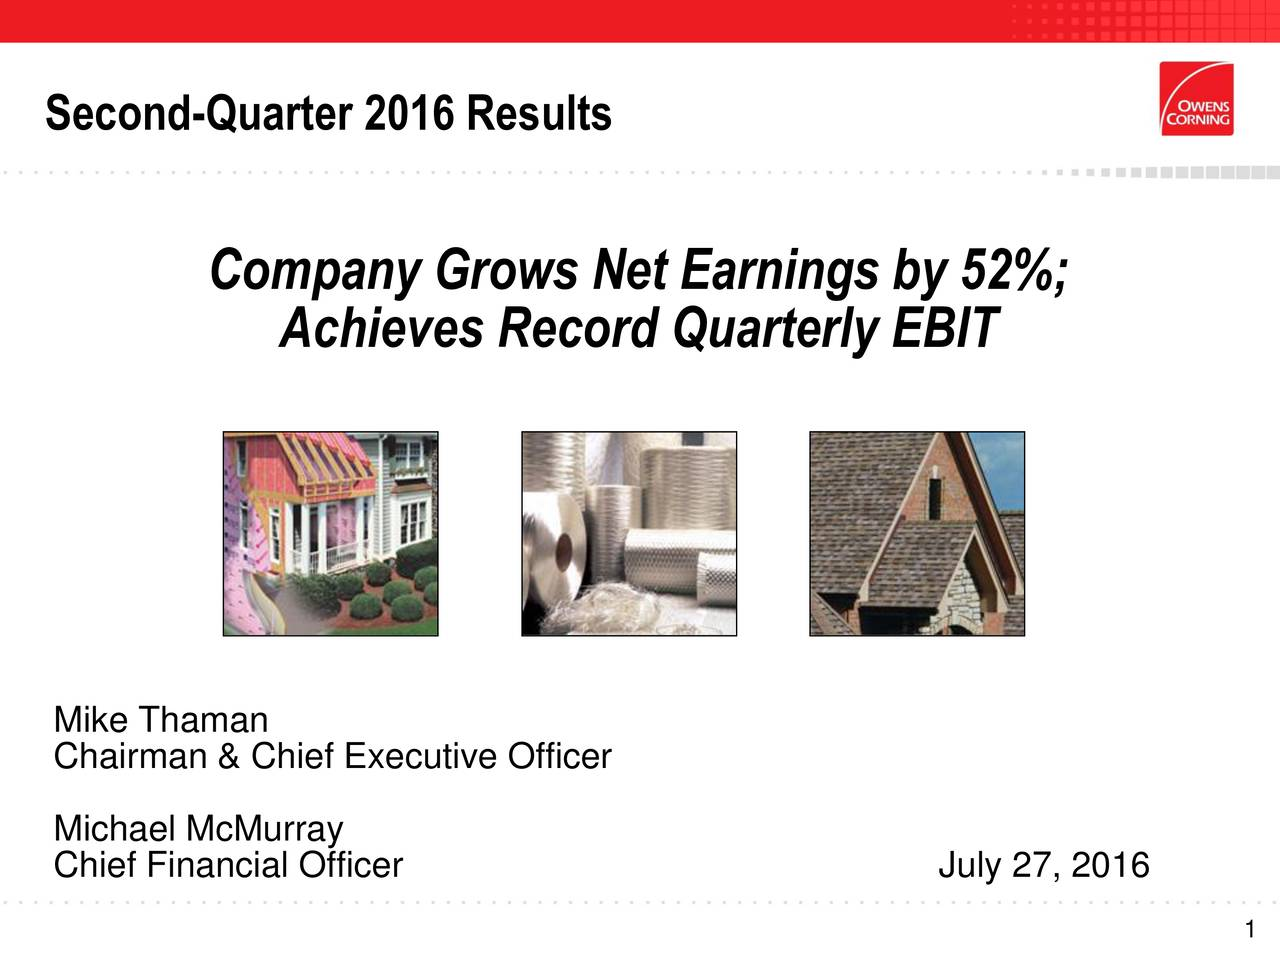 Company Grows Net Earnings by 52%; Achieves Record Quarterly EBIT Chairman & Chief Executive Officer Michael McMurray Chief Financial Officer July 27, 2016 1